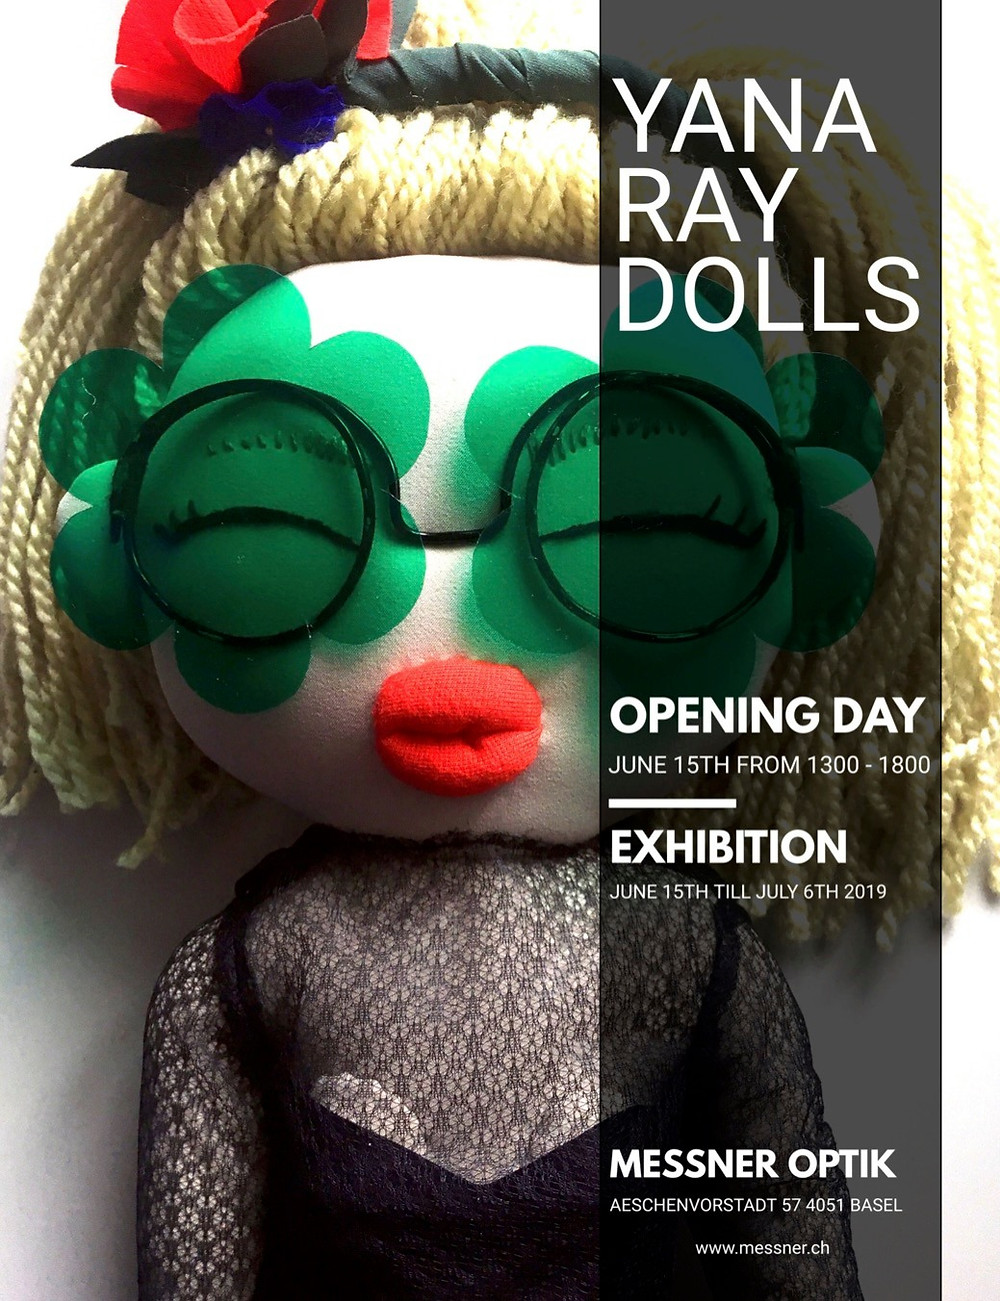 During Art Basel'19 week Yana Ray Dolls collection was presented by Messner Optik in Basel.